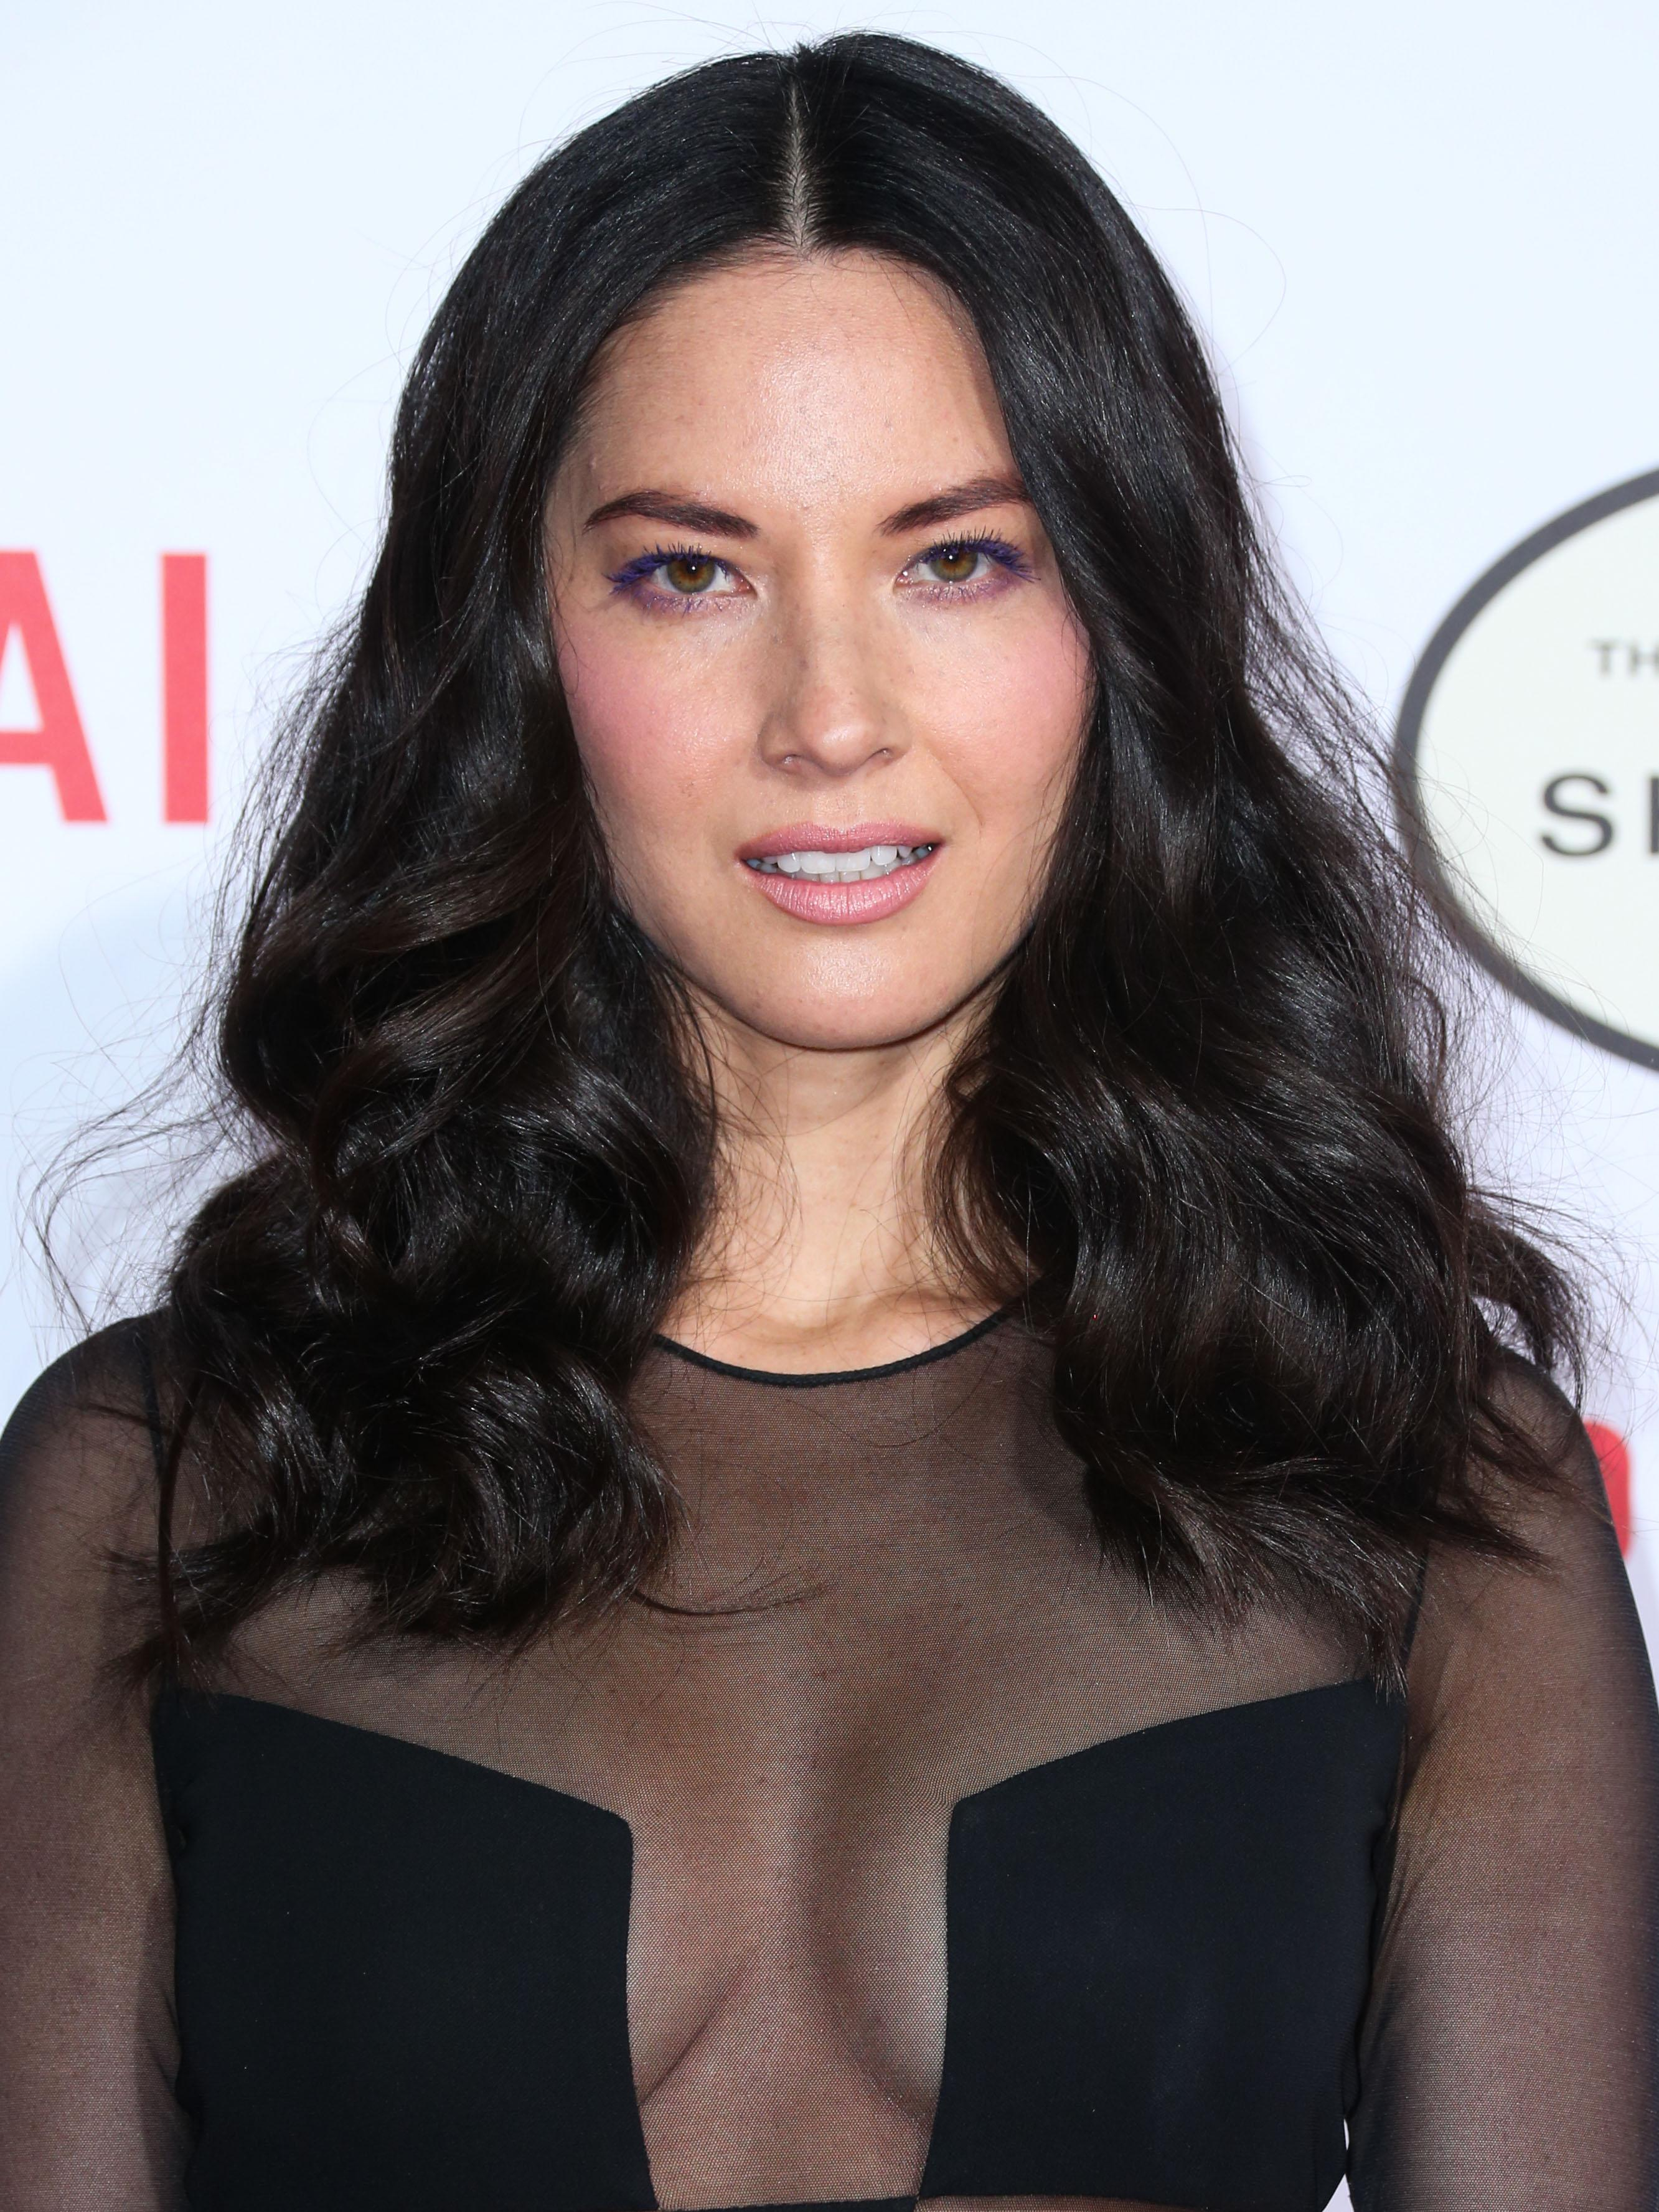 Olivia Munn arrives at the Los Angeles Premiere of Lionsgate's 'Mortdecai' in Hollywood